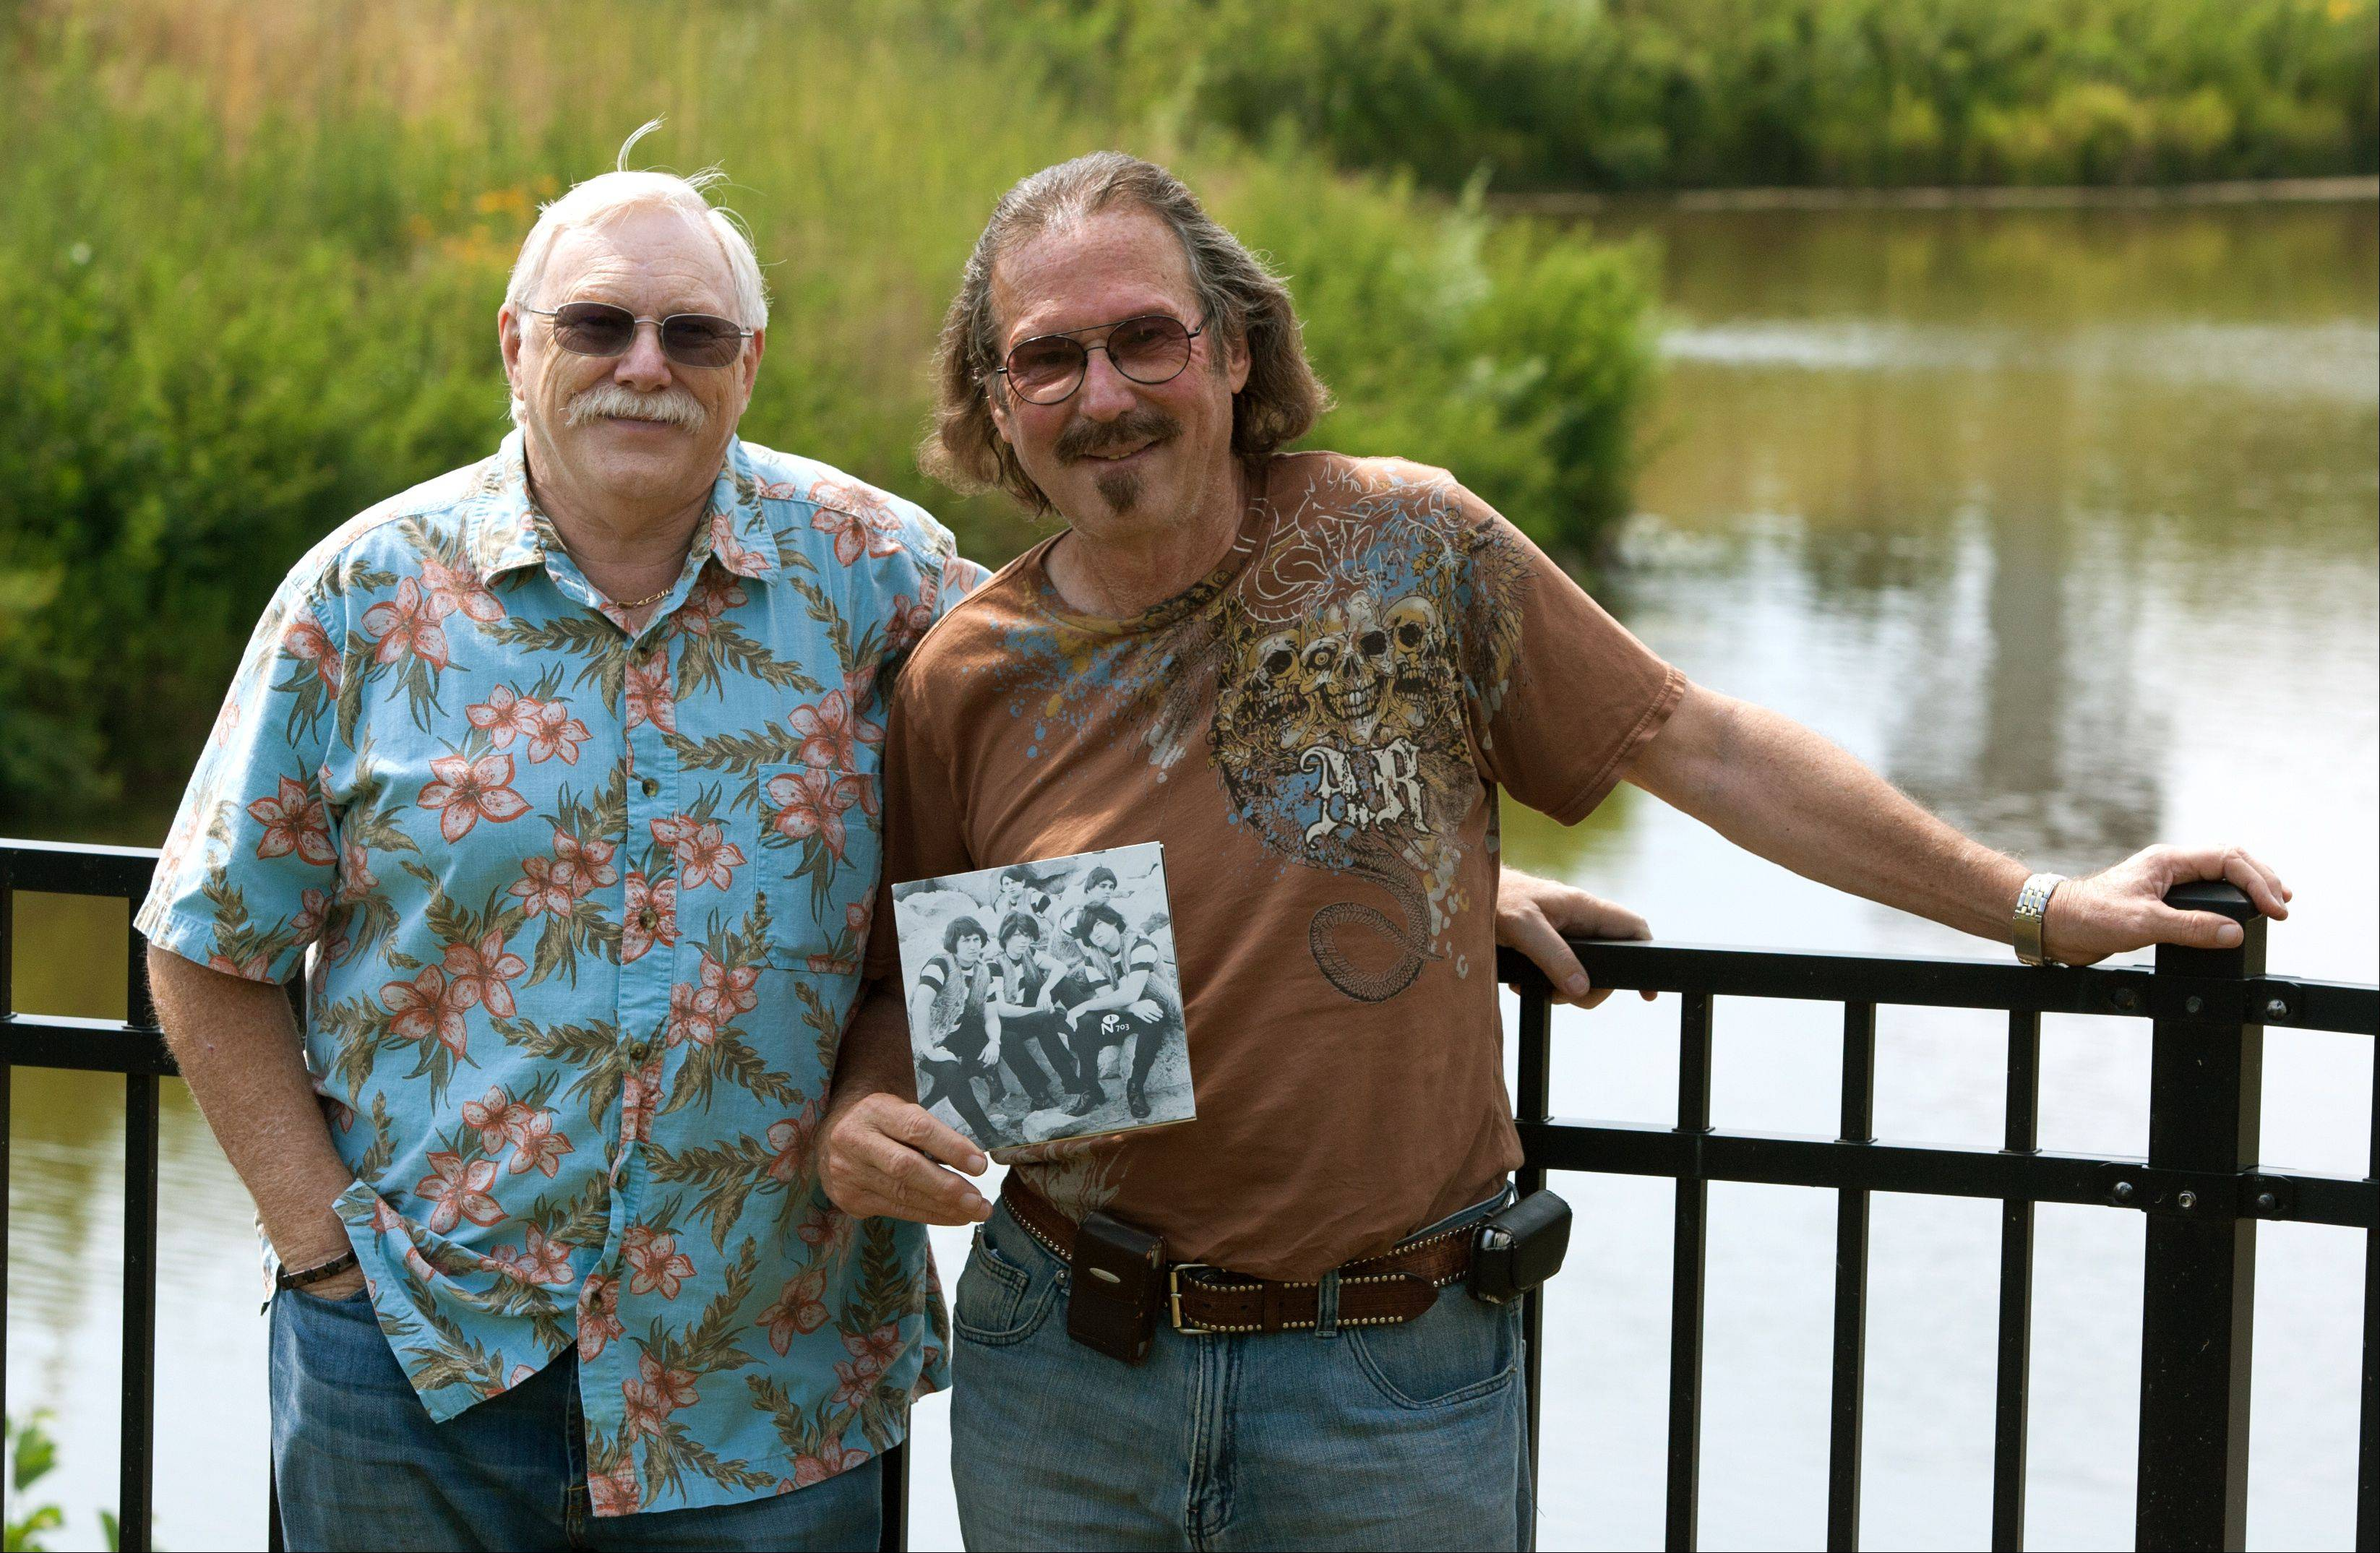 Despite disputes about their history in the 1960s garage-rock band the Cave Dwellers, Gary Goldberg, right, and Peter Budd have reunited and hope to play music together again.